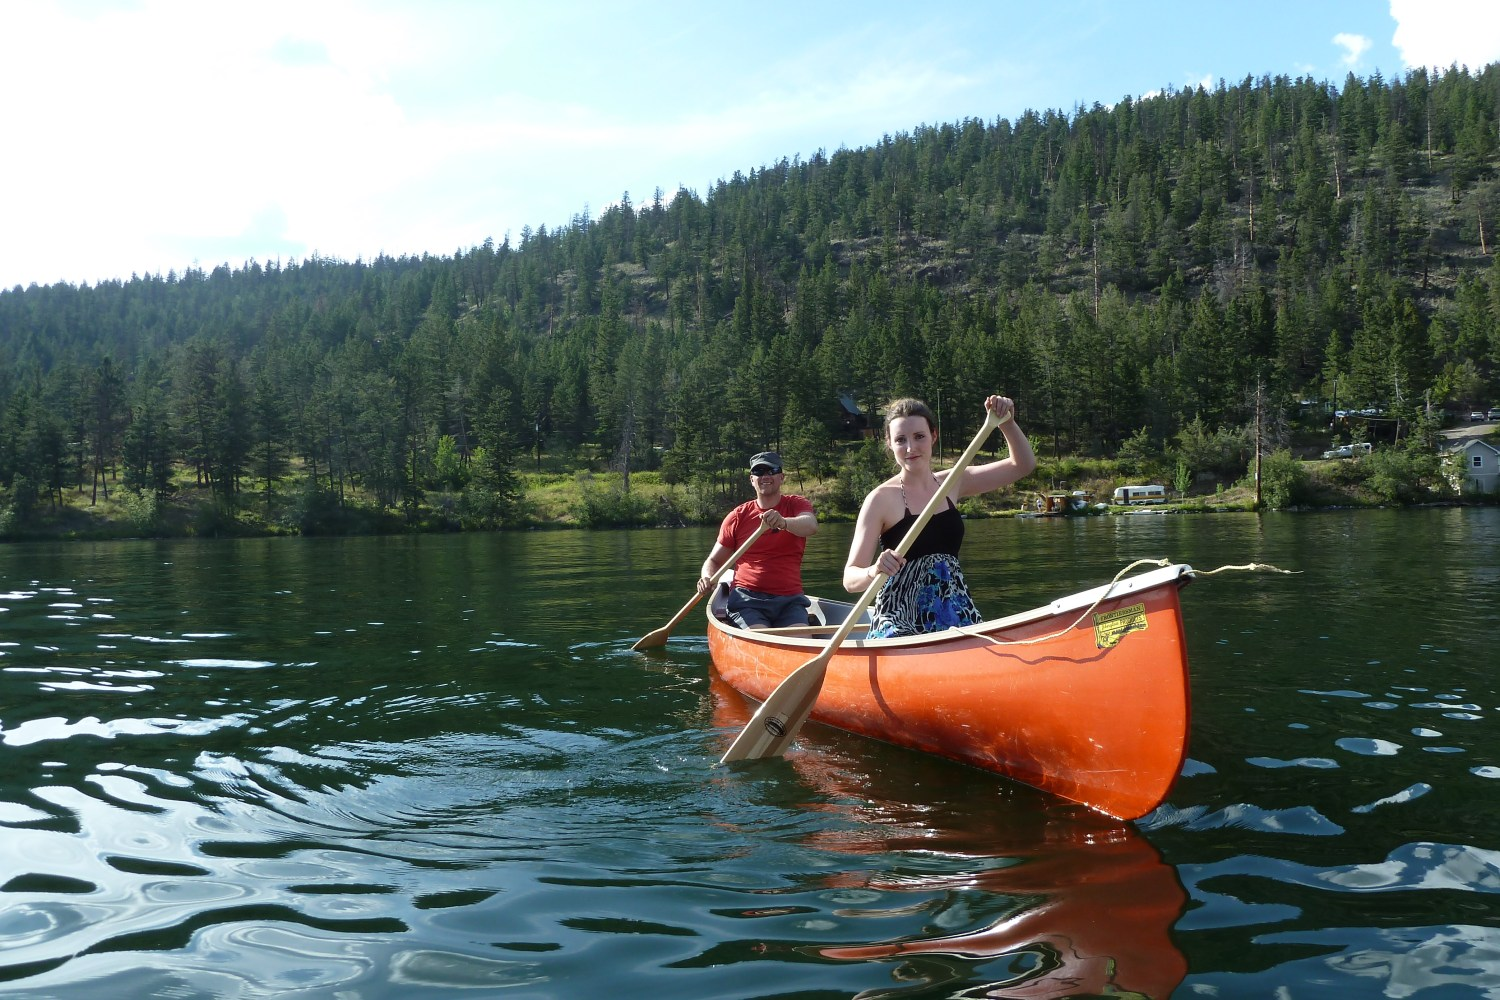 Savannah canoeing with Dutch boyfriend at her family cottage in B.C. Canada